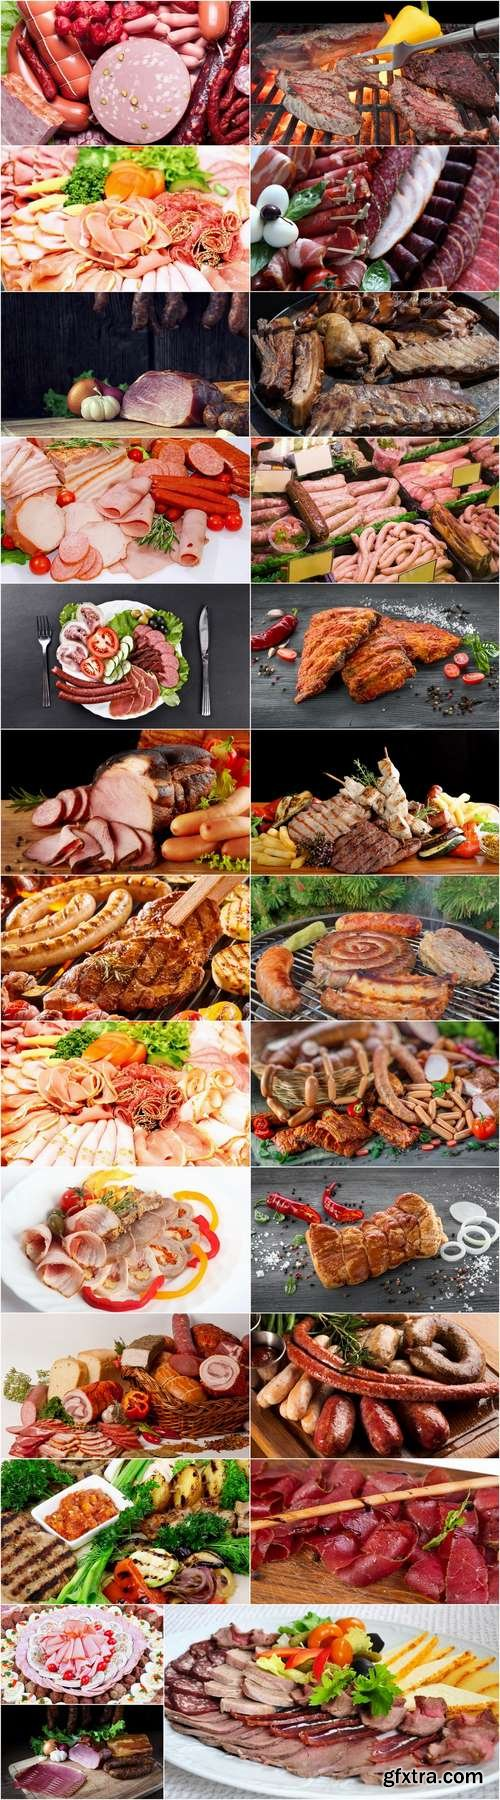 Various types of meat delicacy sliced smoked sausage barbecue meats 25 HQ Jpeg